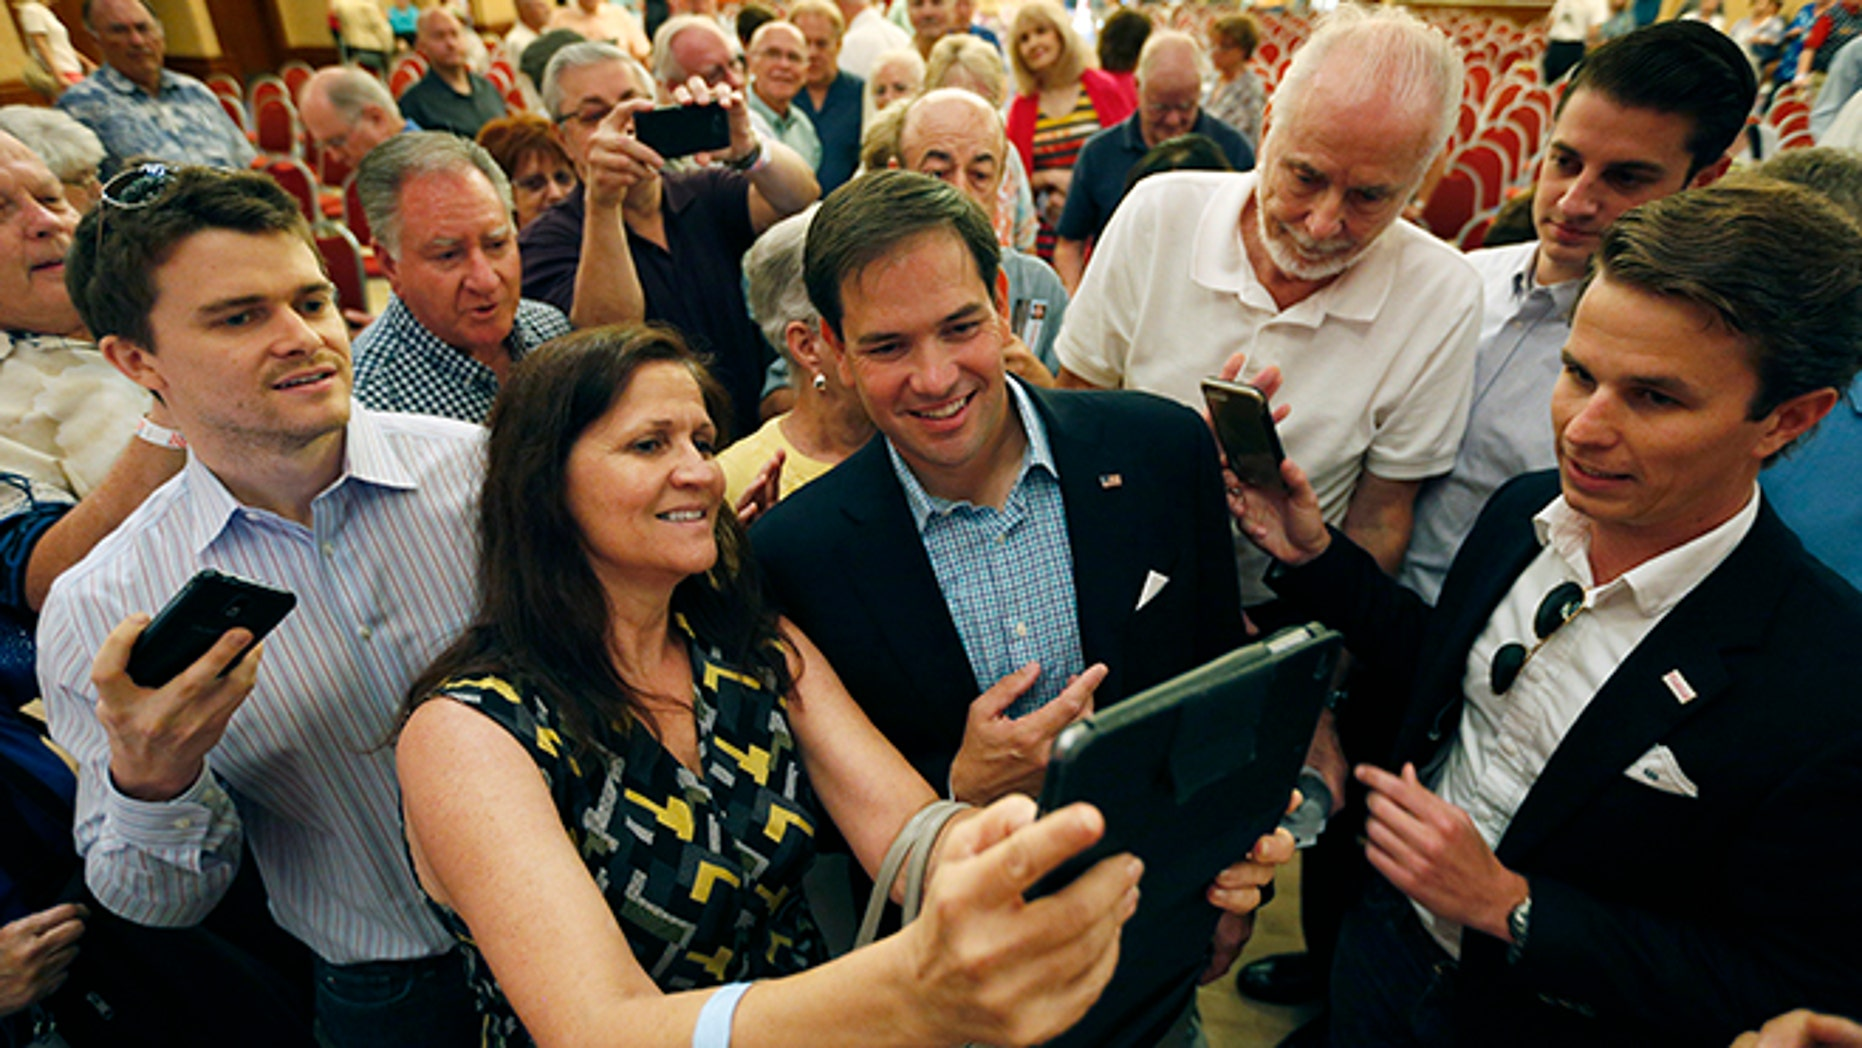 Republican presidential candidate Sen. Marco Rubio, R-Fla., takes pictures with people during a campaign event Saturday, July 11, 2015, in Henderson, Nev. (AP Photo/John Locher)